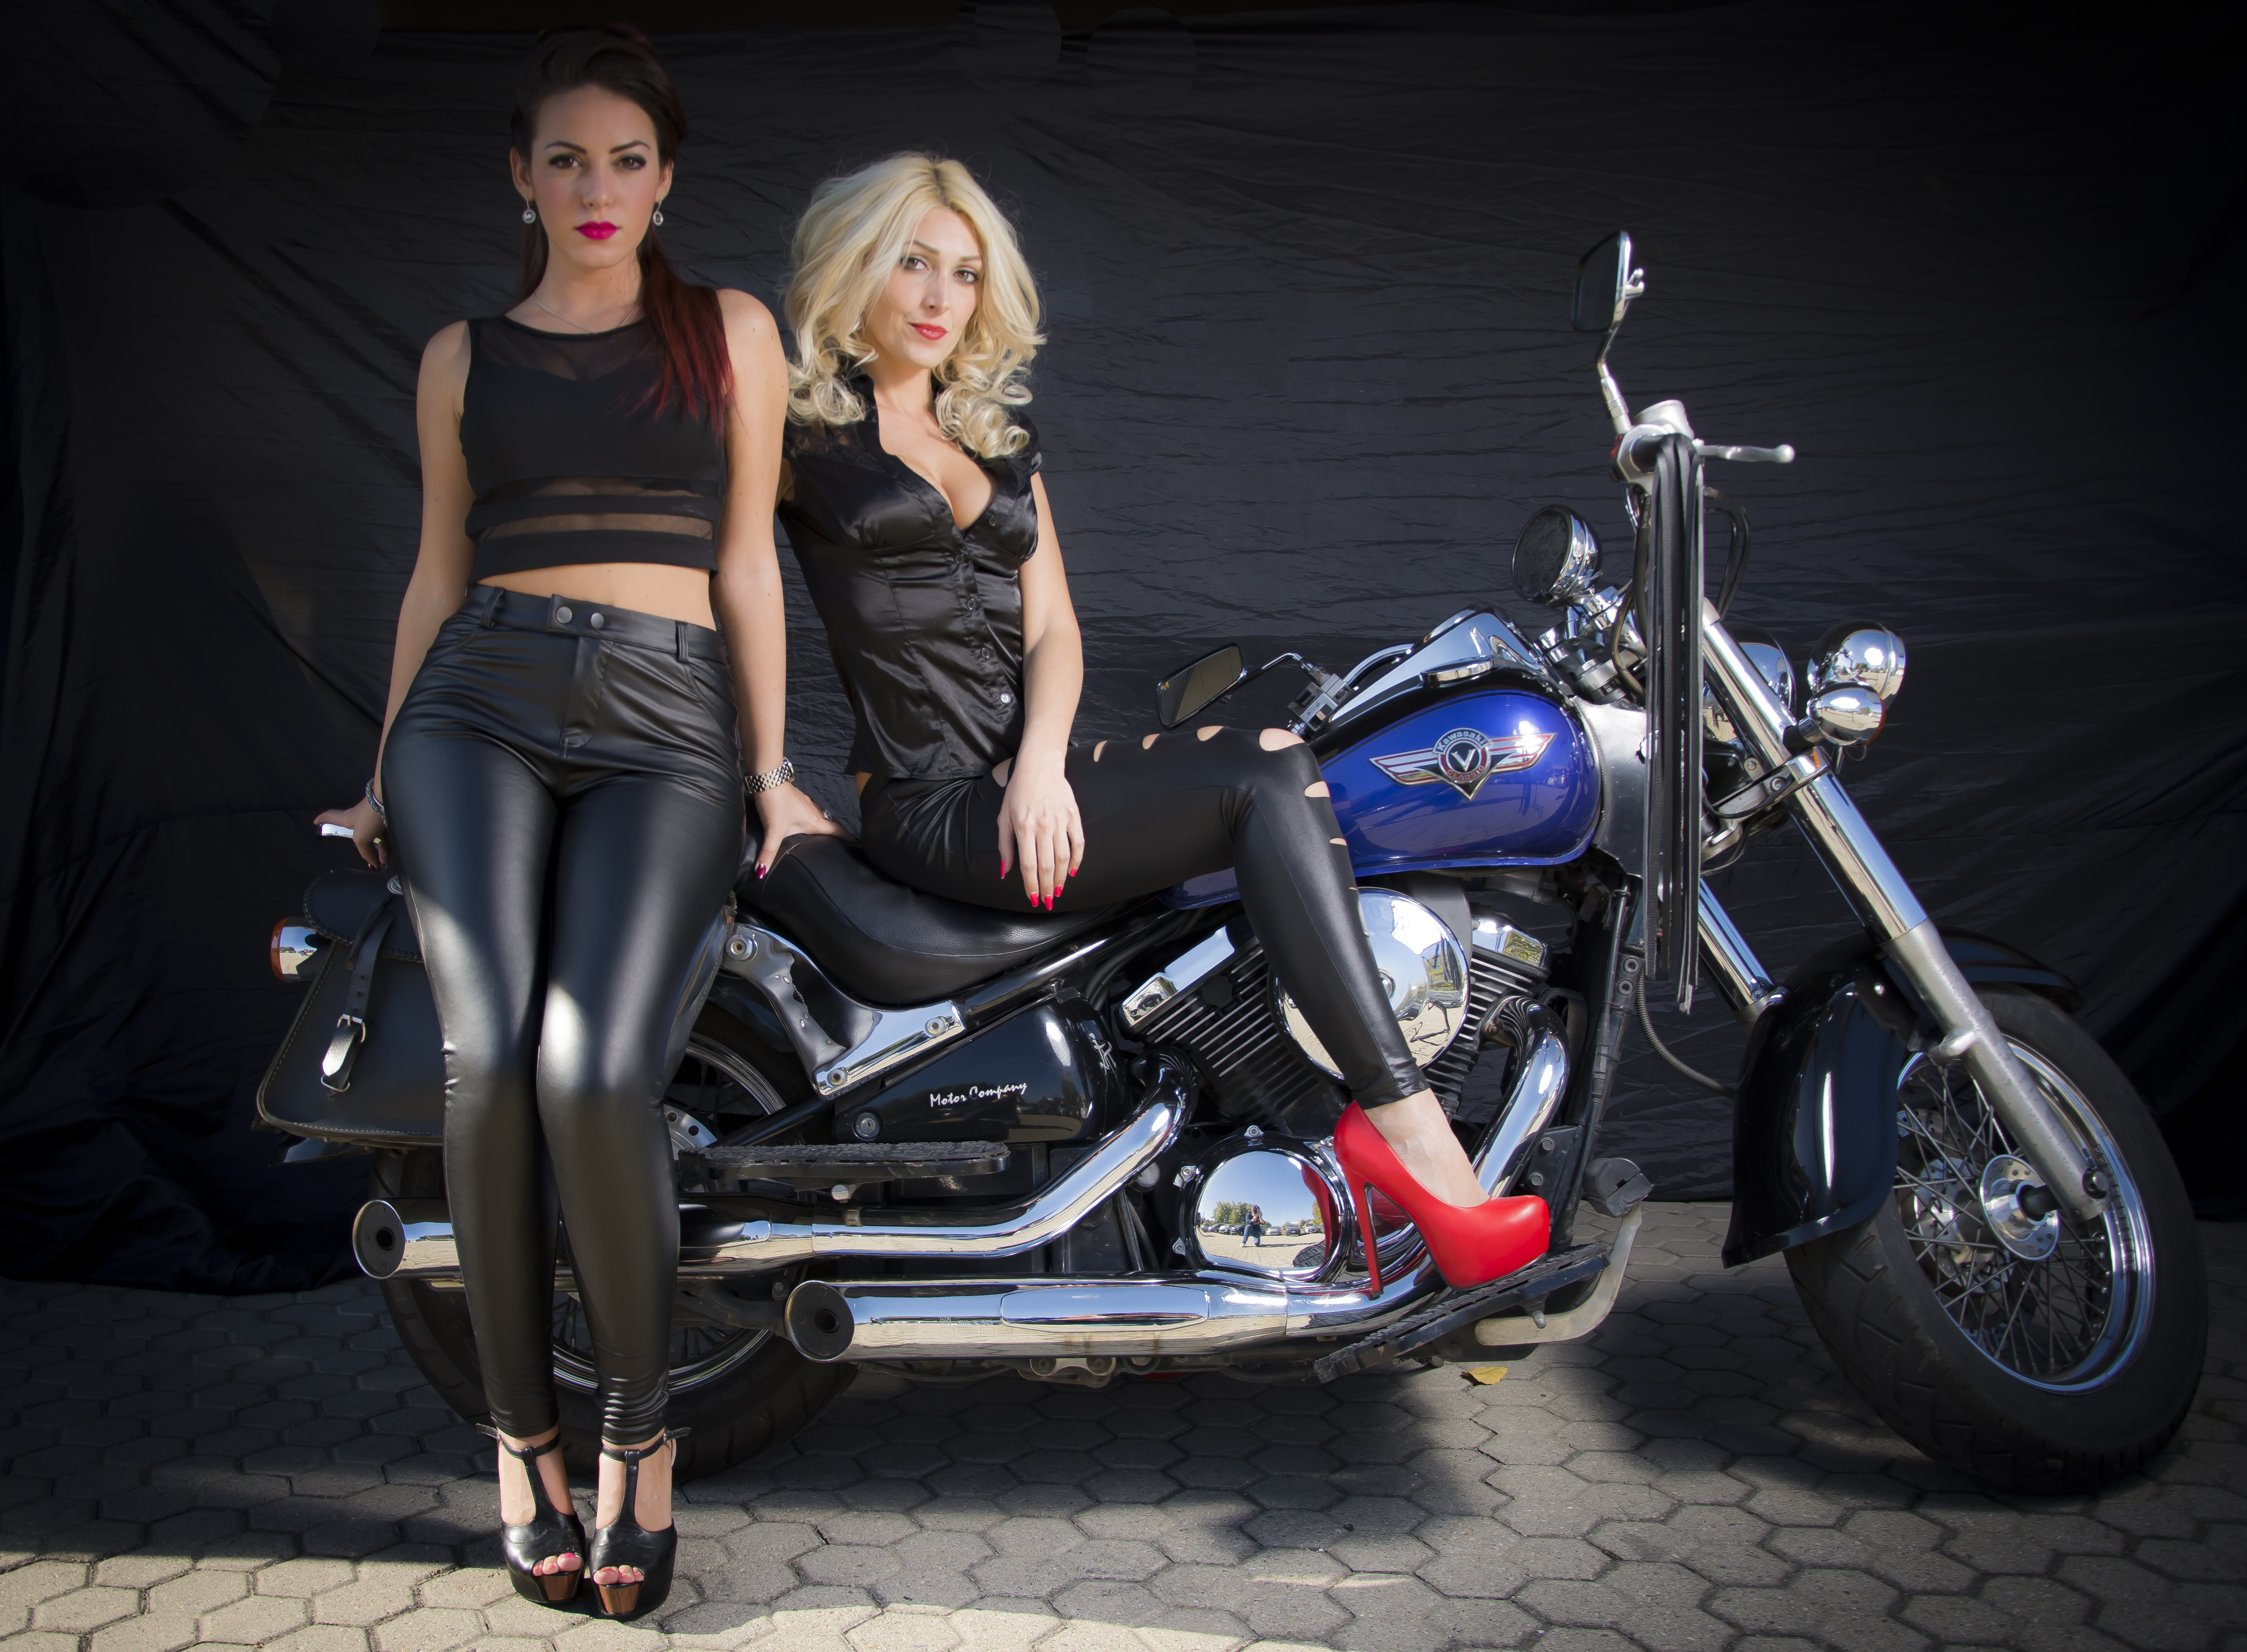 Shooting Donne & Motori